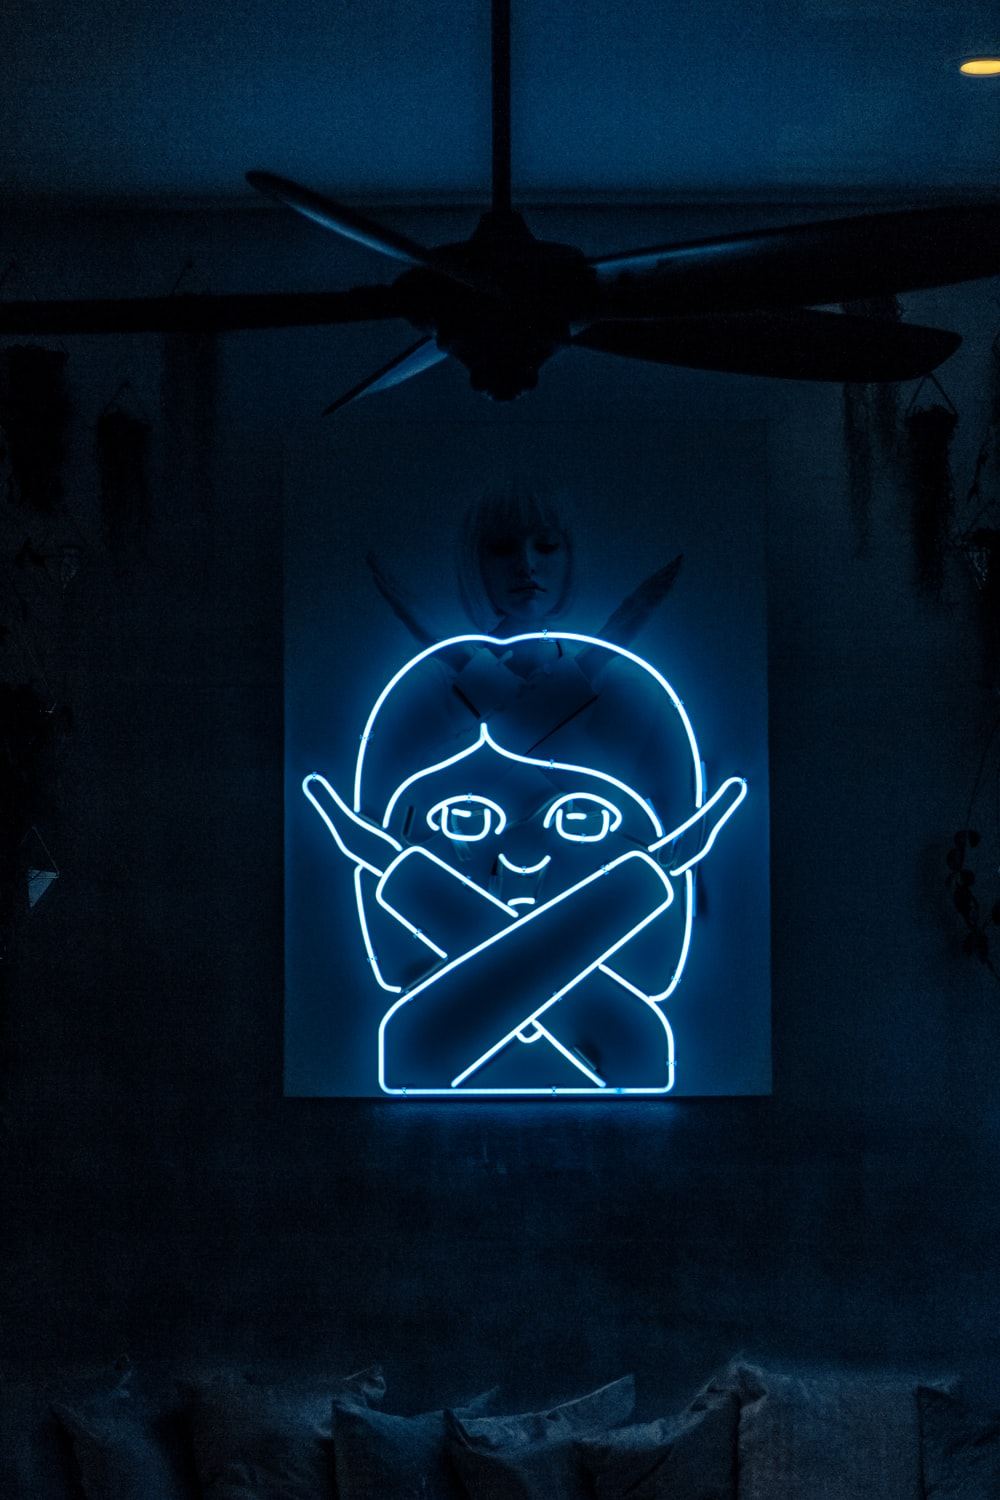 neon signage of woman crossing her both arms